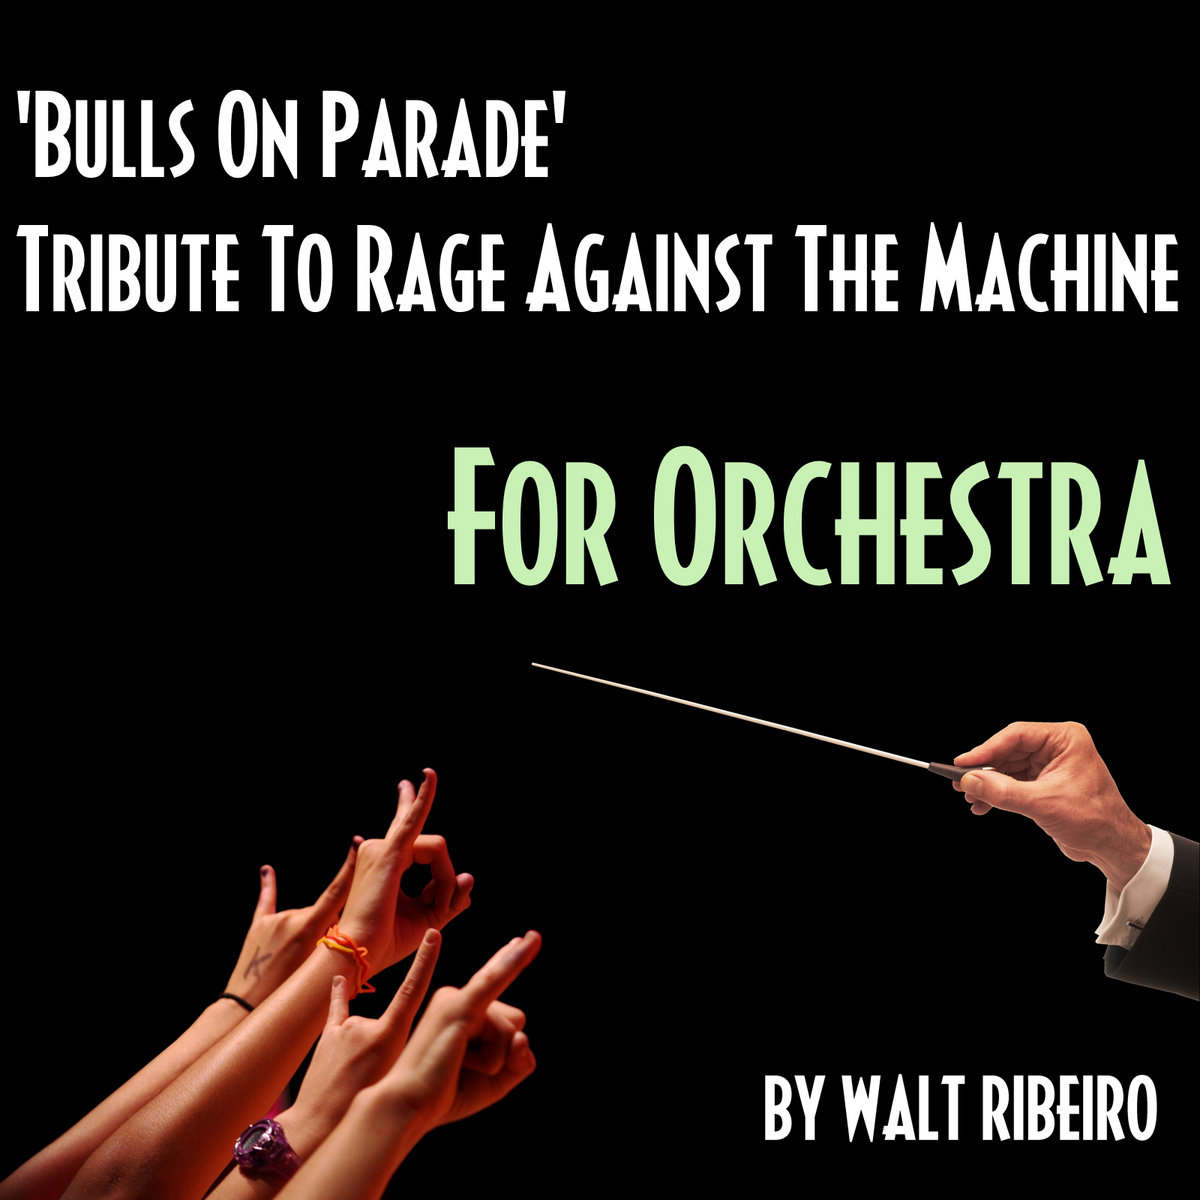 Rage Against The Machine 'Bulls On Parade' | Walt Ribeiro